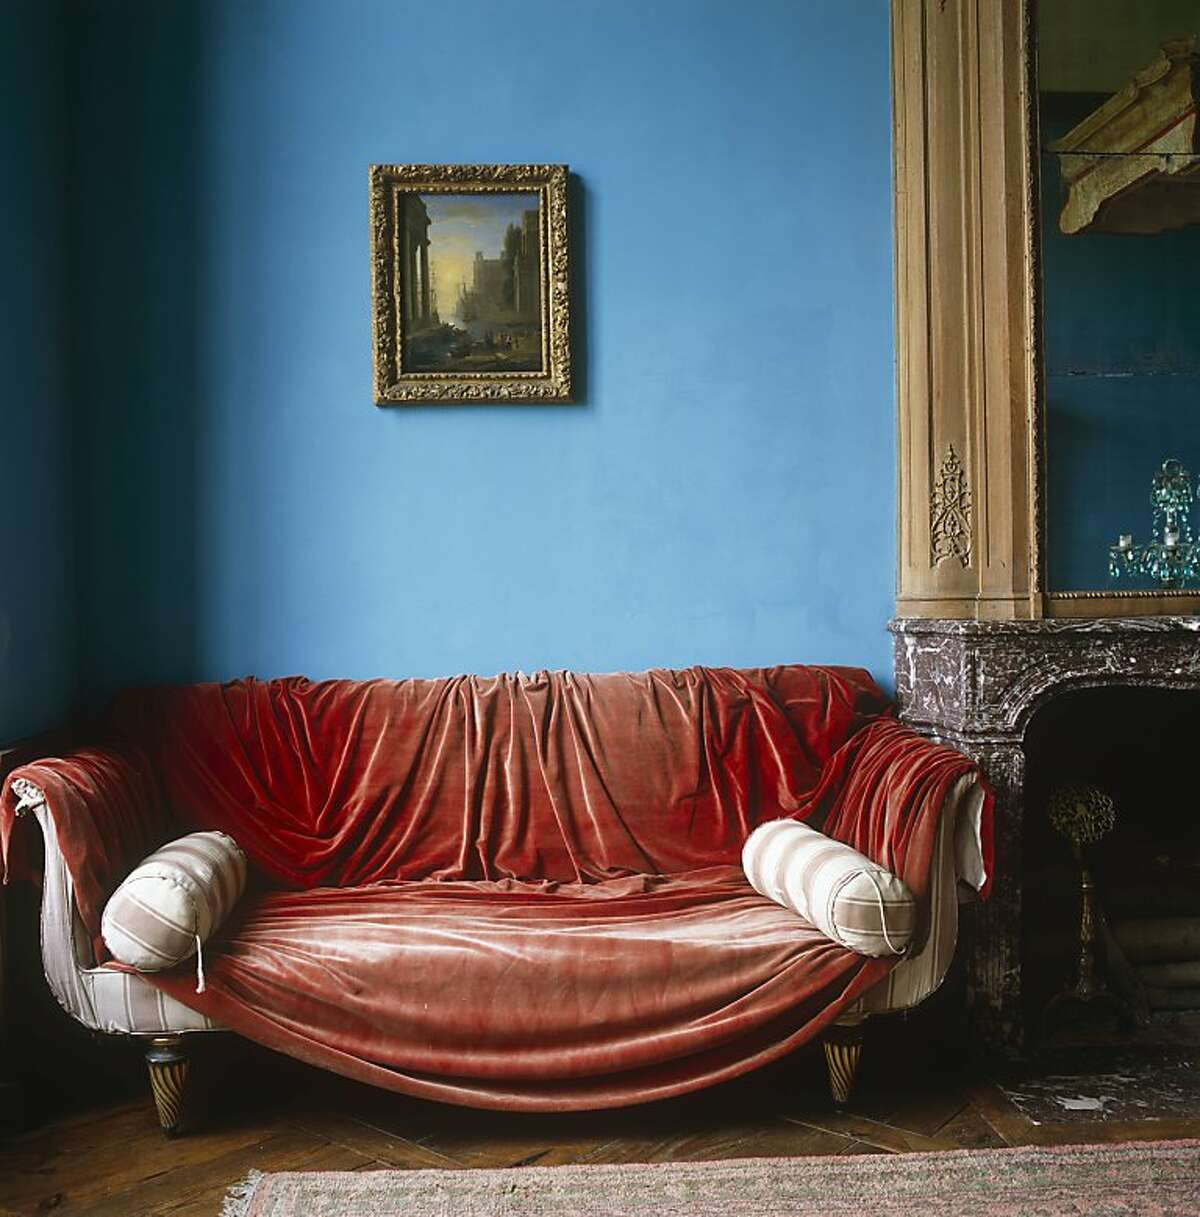 Excerpted from The Right Color by Eve Ashcraft (Artisan Books). A red velvet curtain is tossed casually over a Regency sofa in a room painted a powder blue